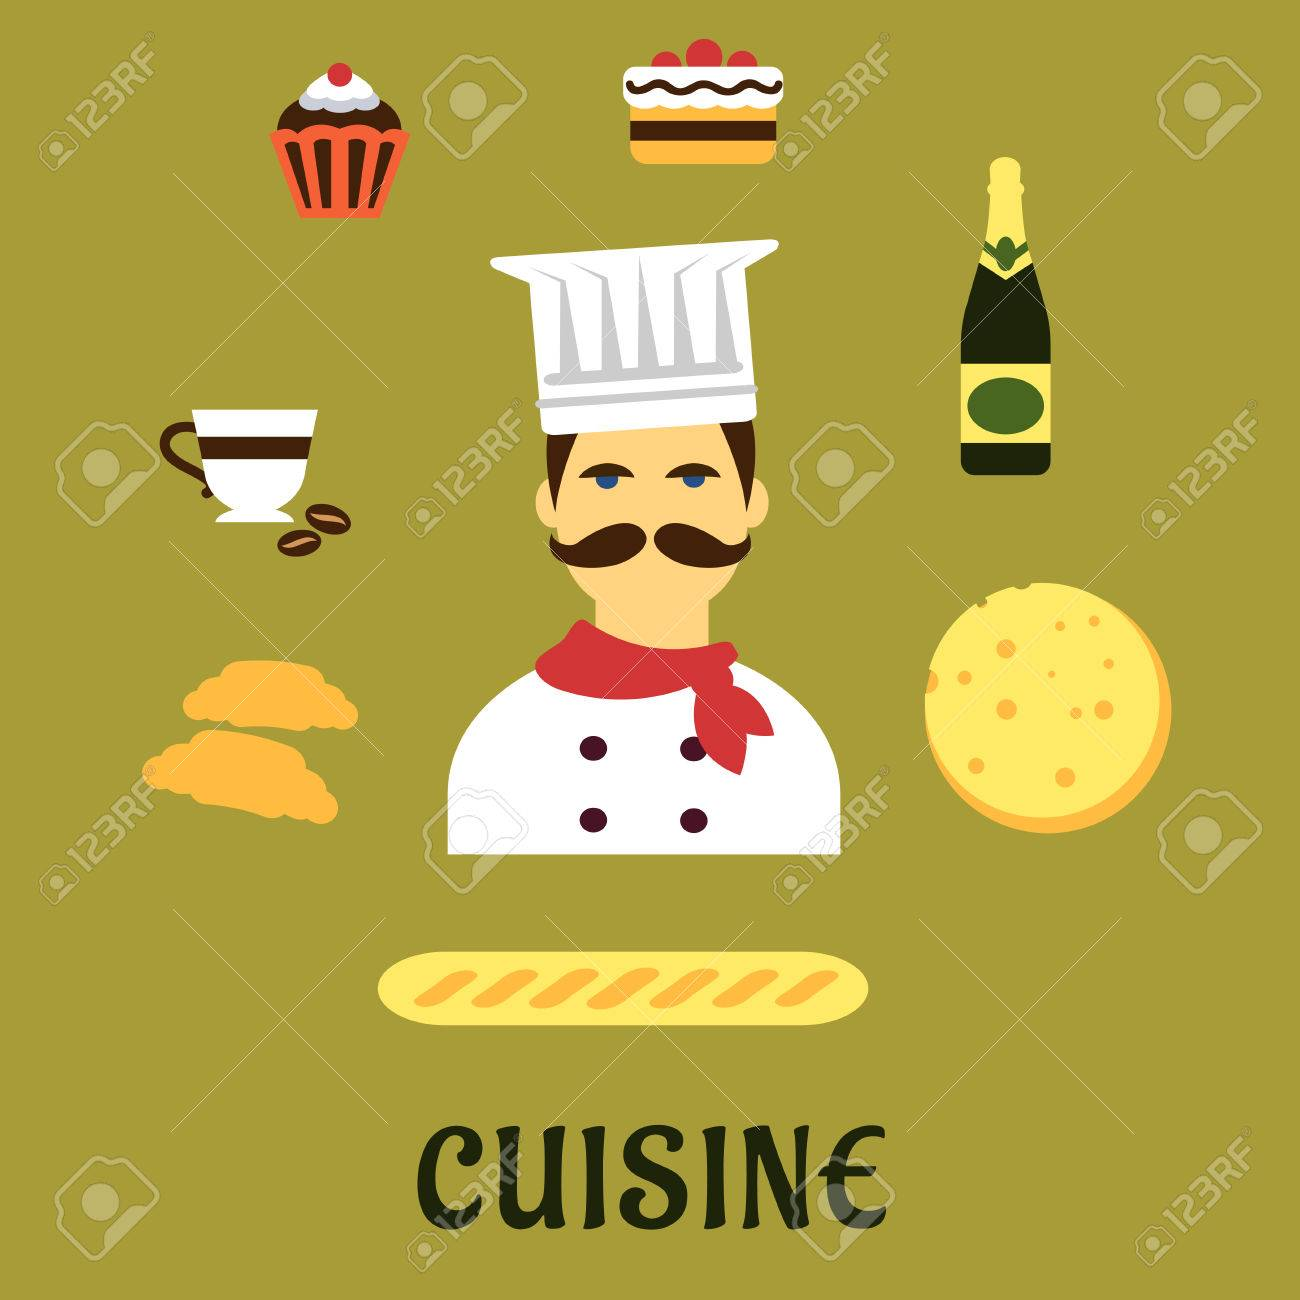 french cuisine flat icons with chef in white toque and red